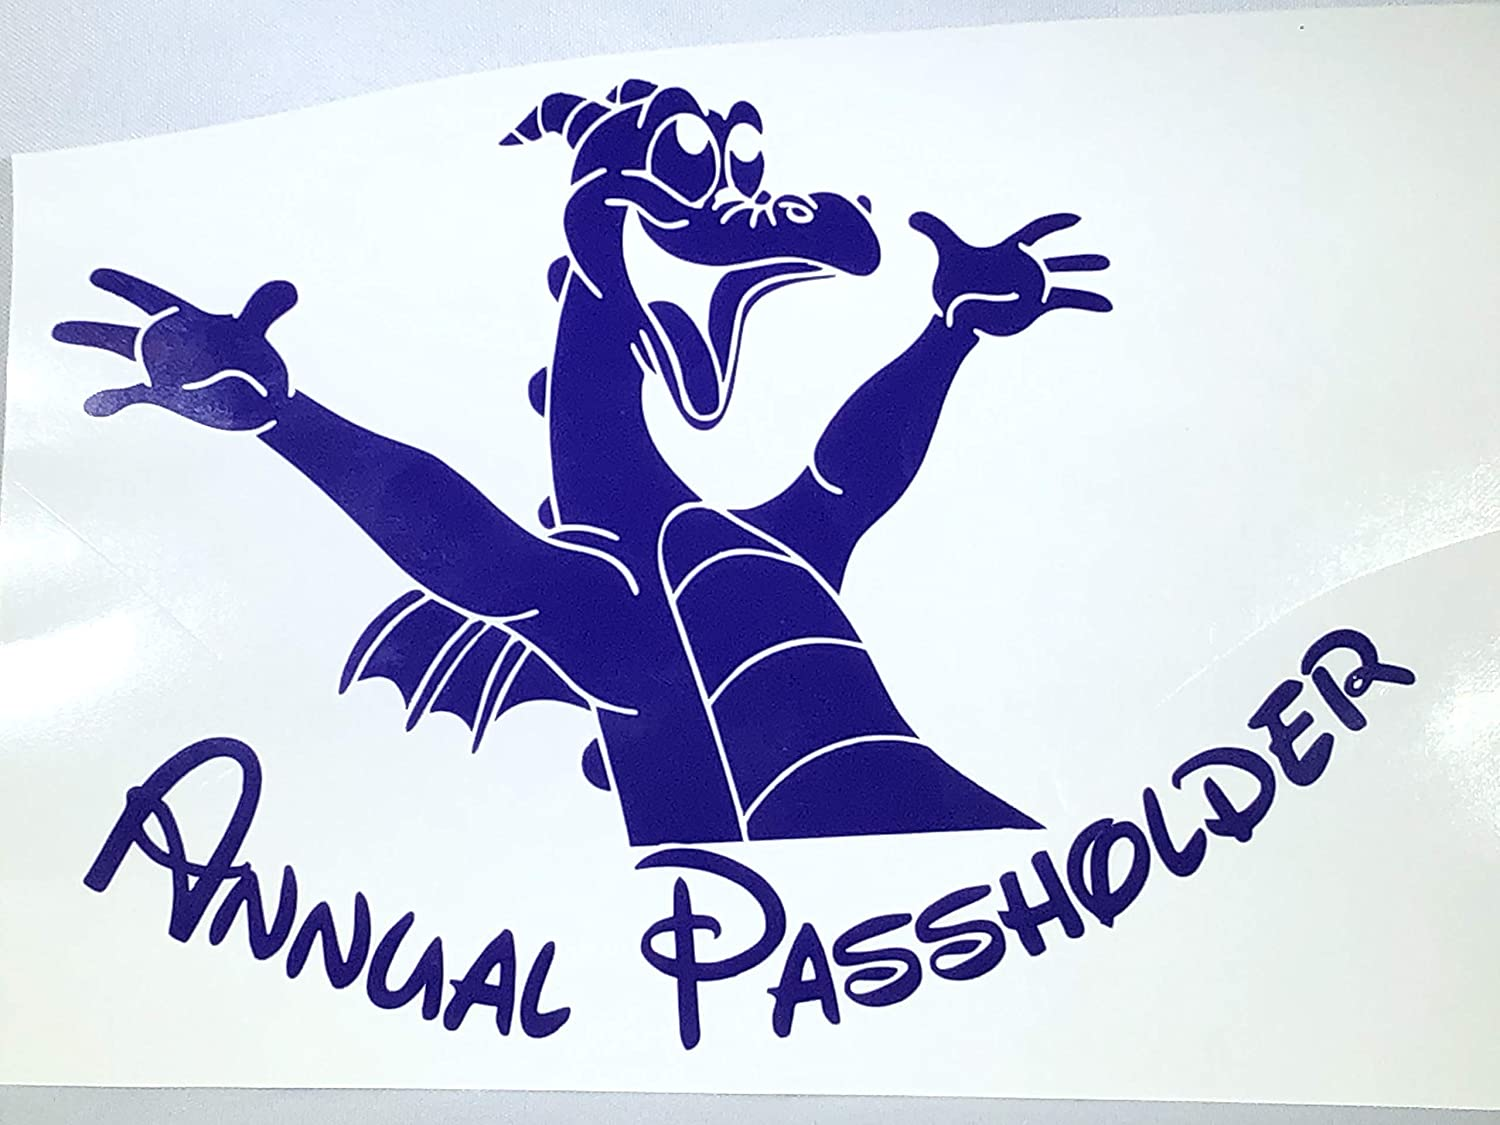 Disneyland Passholder Decal Disney Figment Annual Passholder Car Decal Walt Disney World Multiple Colors Available Annual Pass WDW Passholder Decal